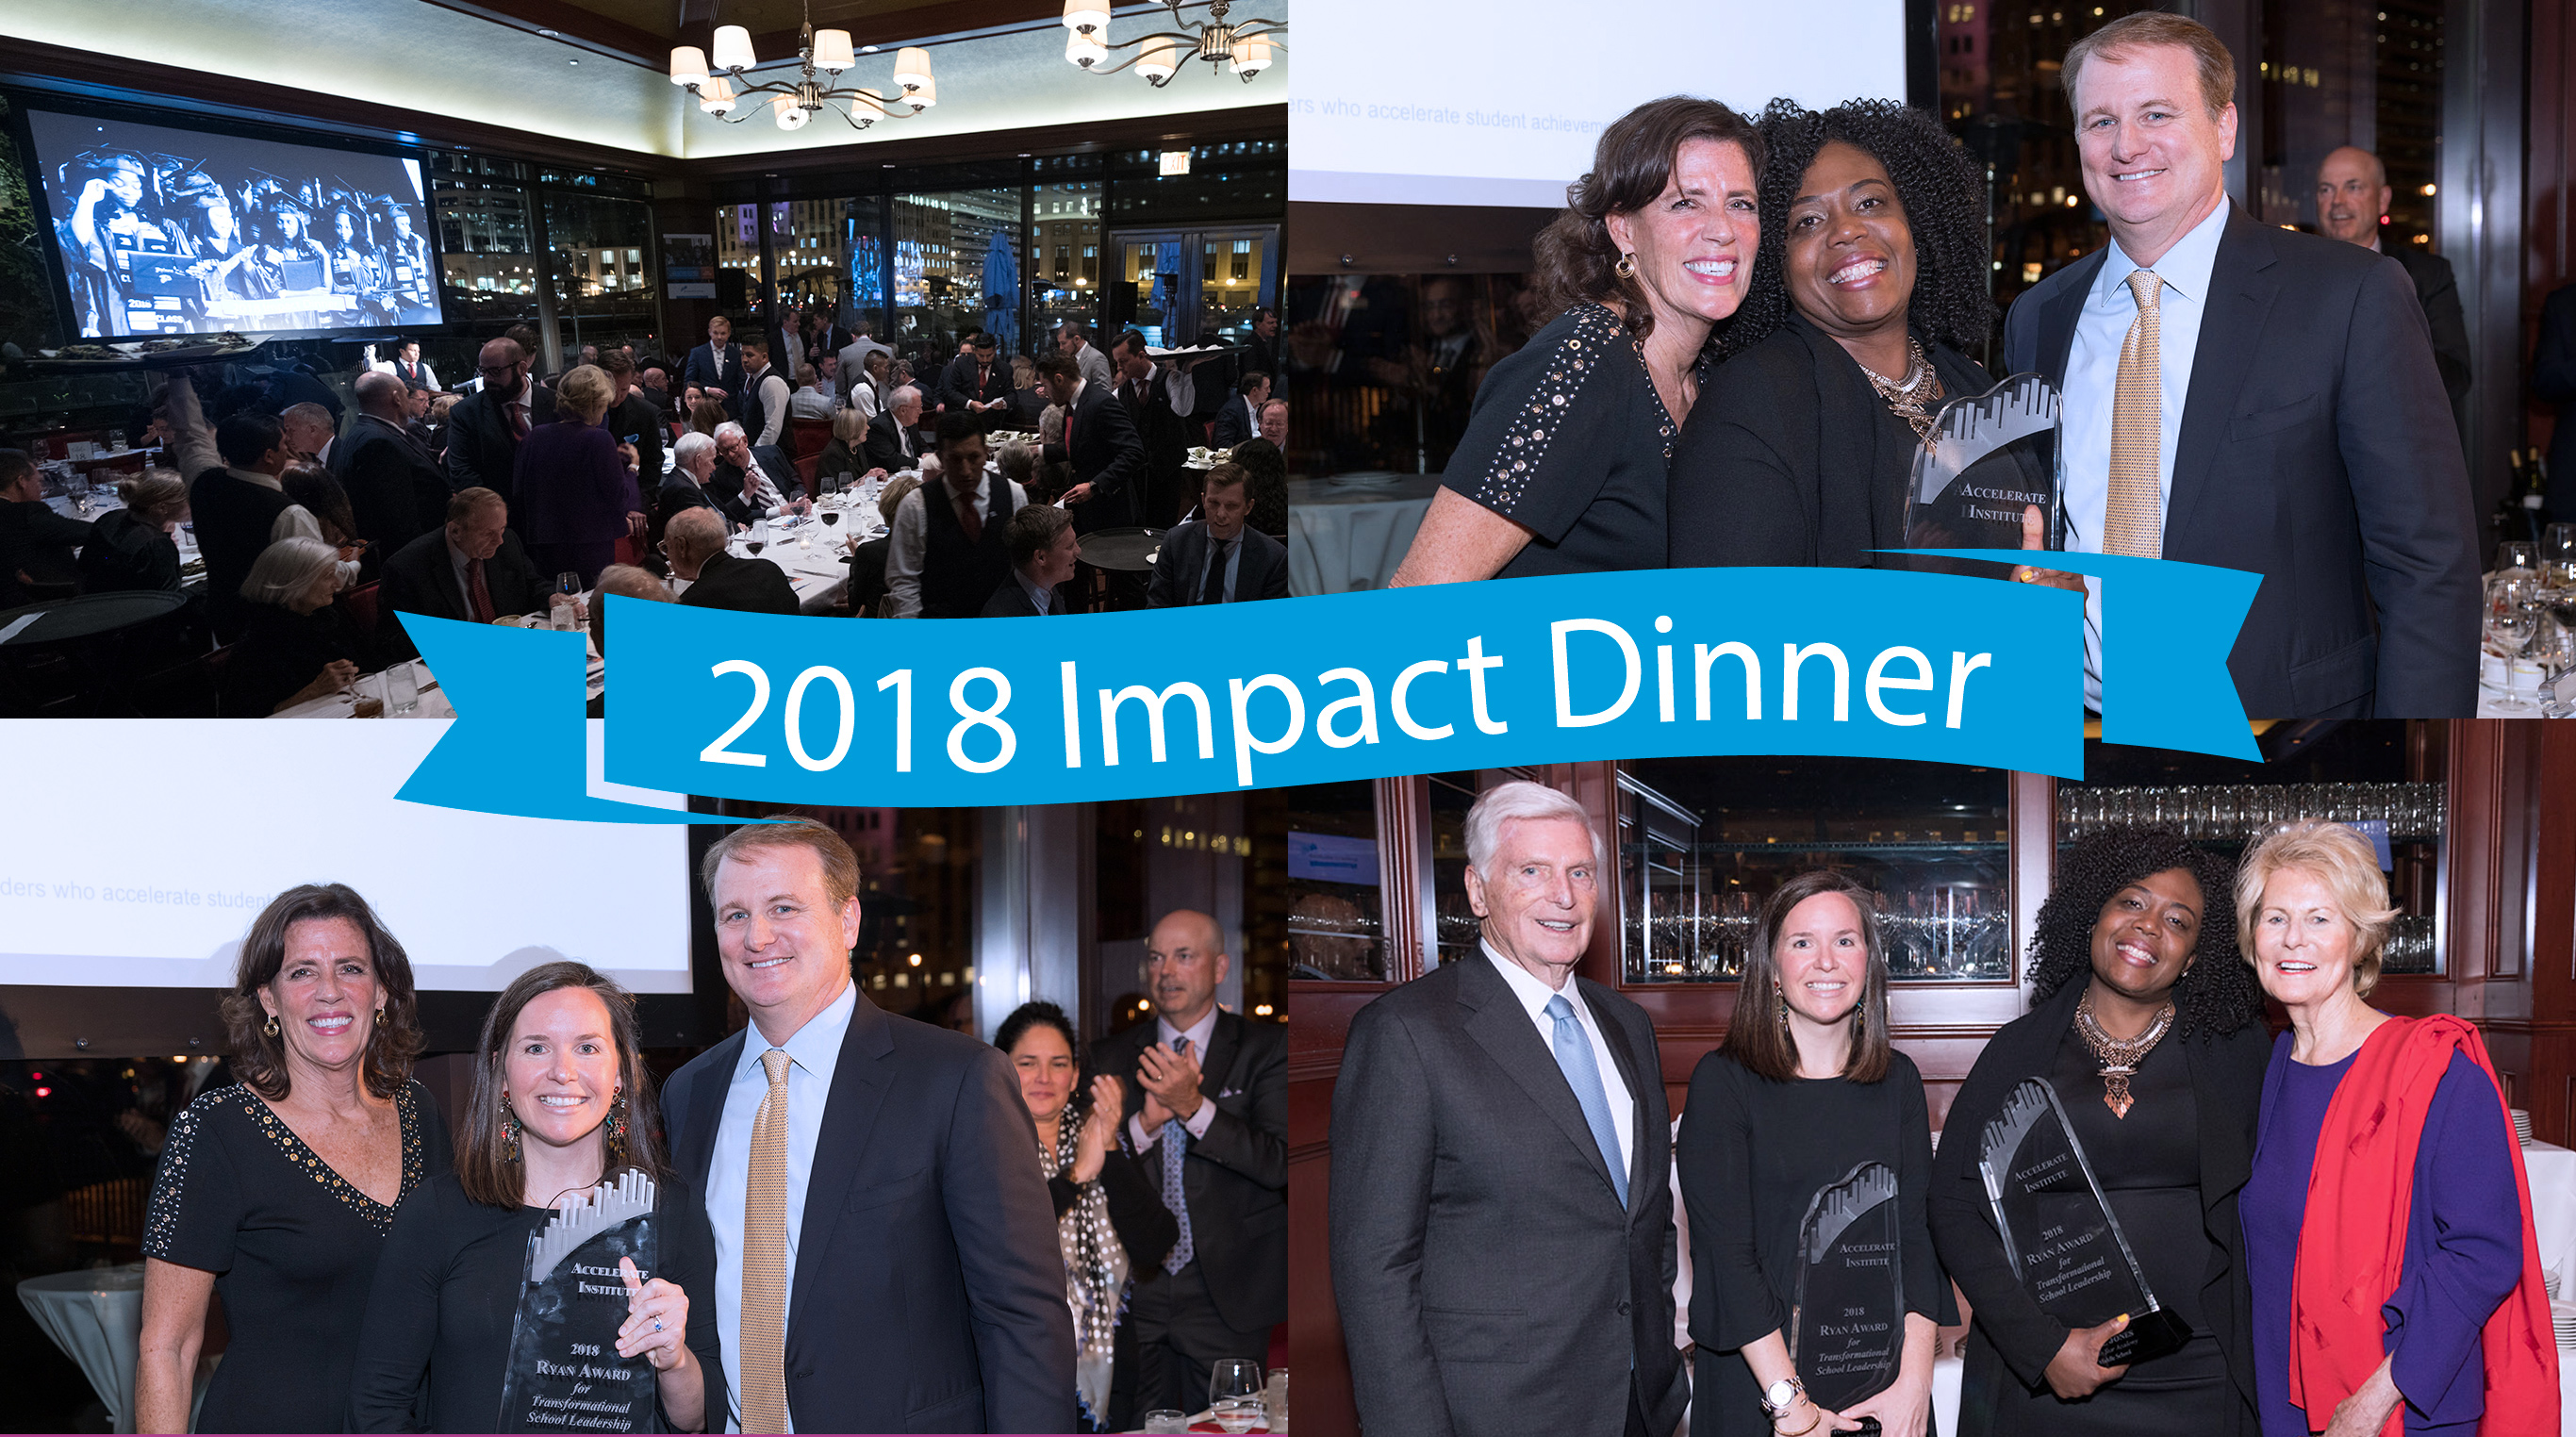 Thank you for helping make this year's Impact Dinner a big success